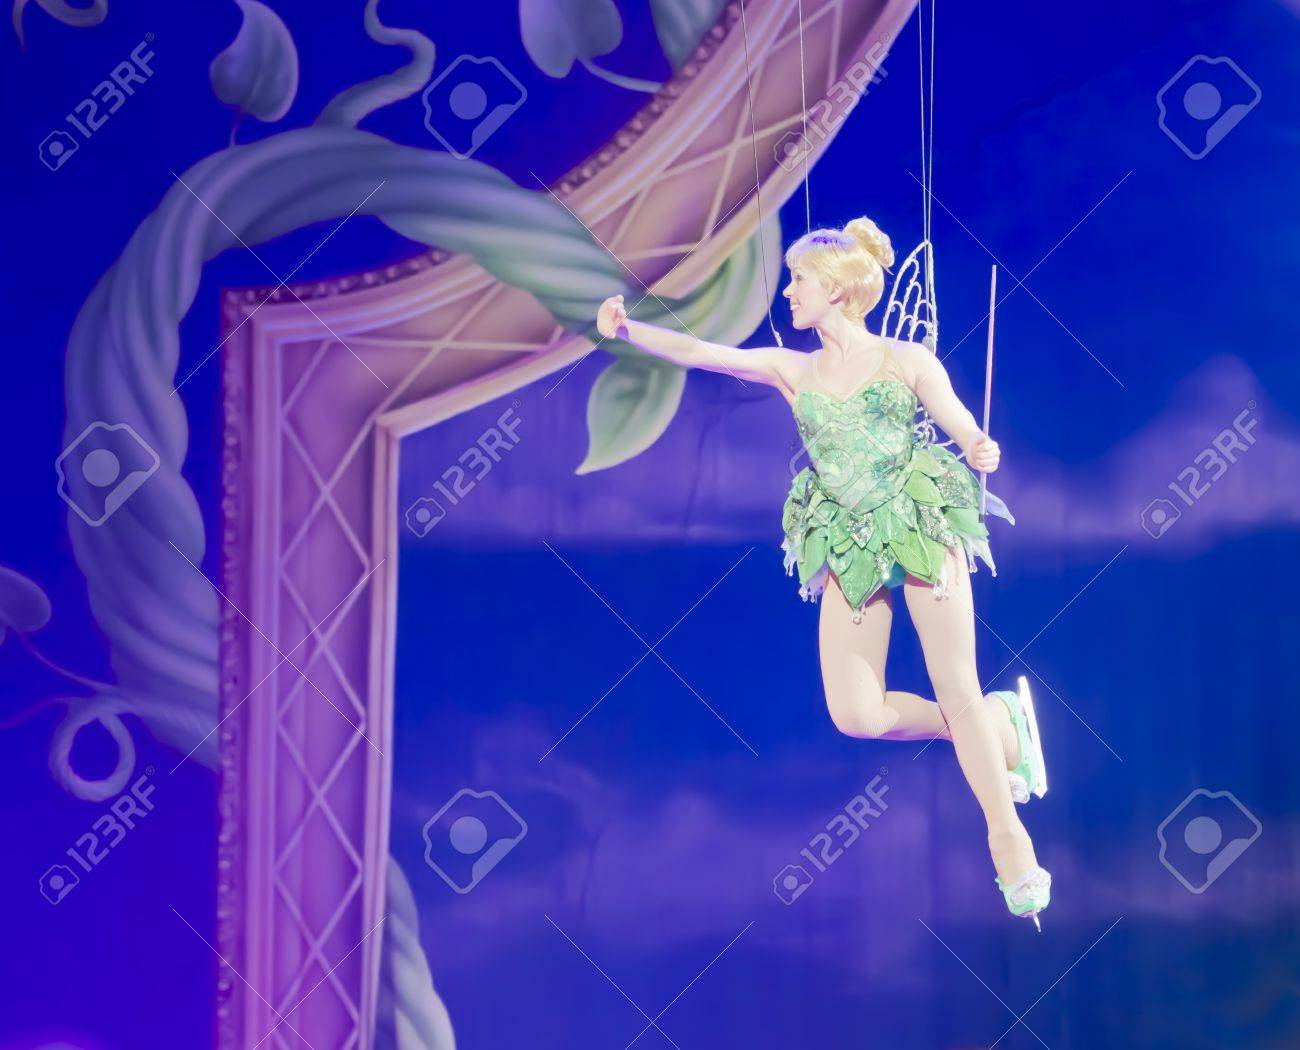 GREEN BAY, WI - MARCH 10: Tinker Bell from Peter Pan flies high above the ice the Disney on Ice Treasure Trove show at the Resch Center on March 10, 2012 in Green Bay, Wisconsin. Stock Photo - 12993736